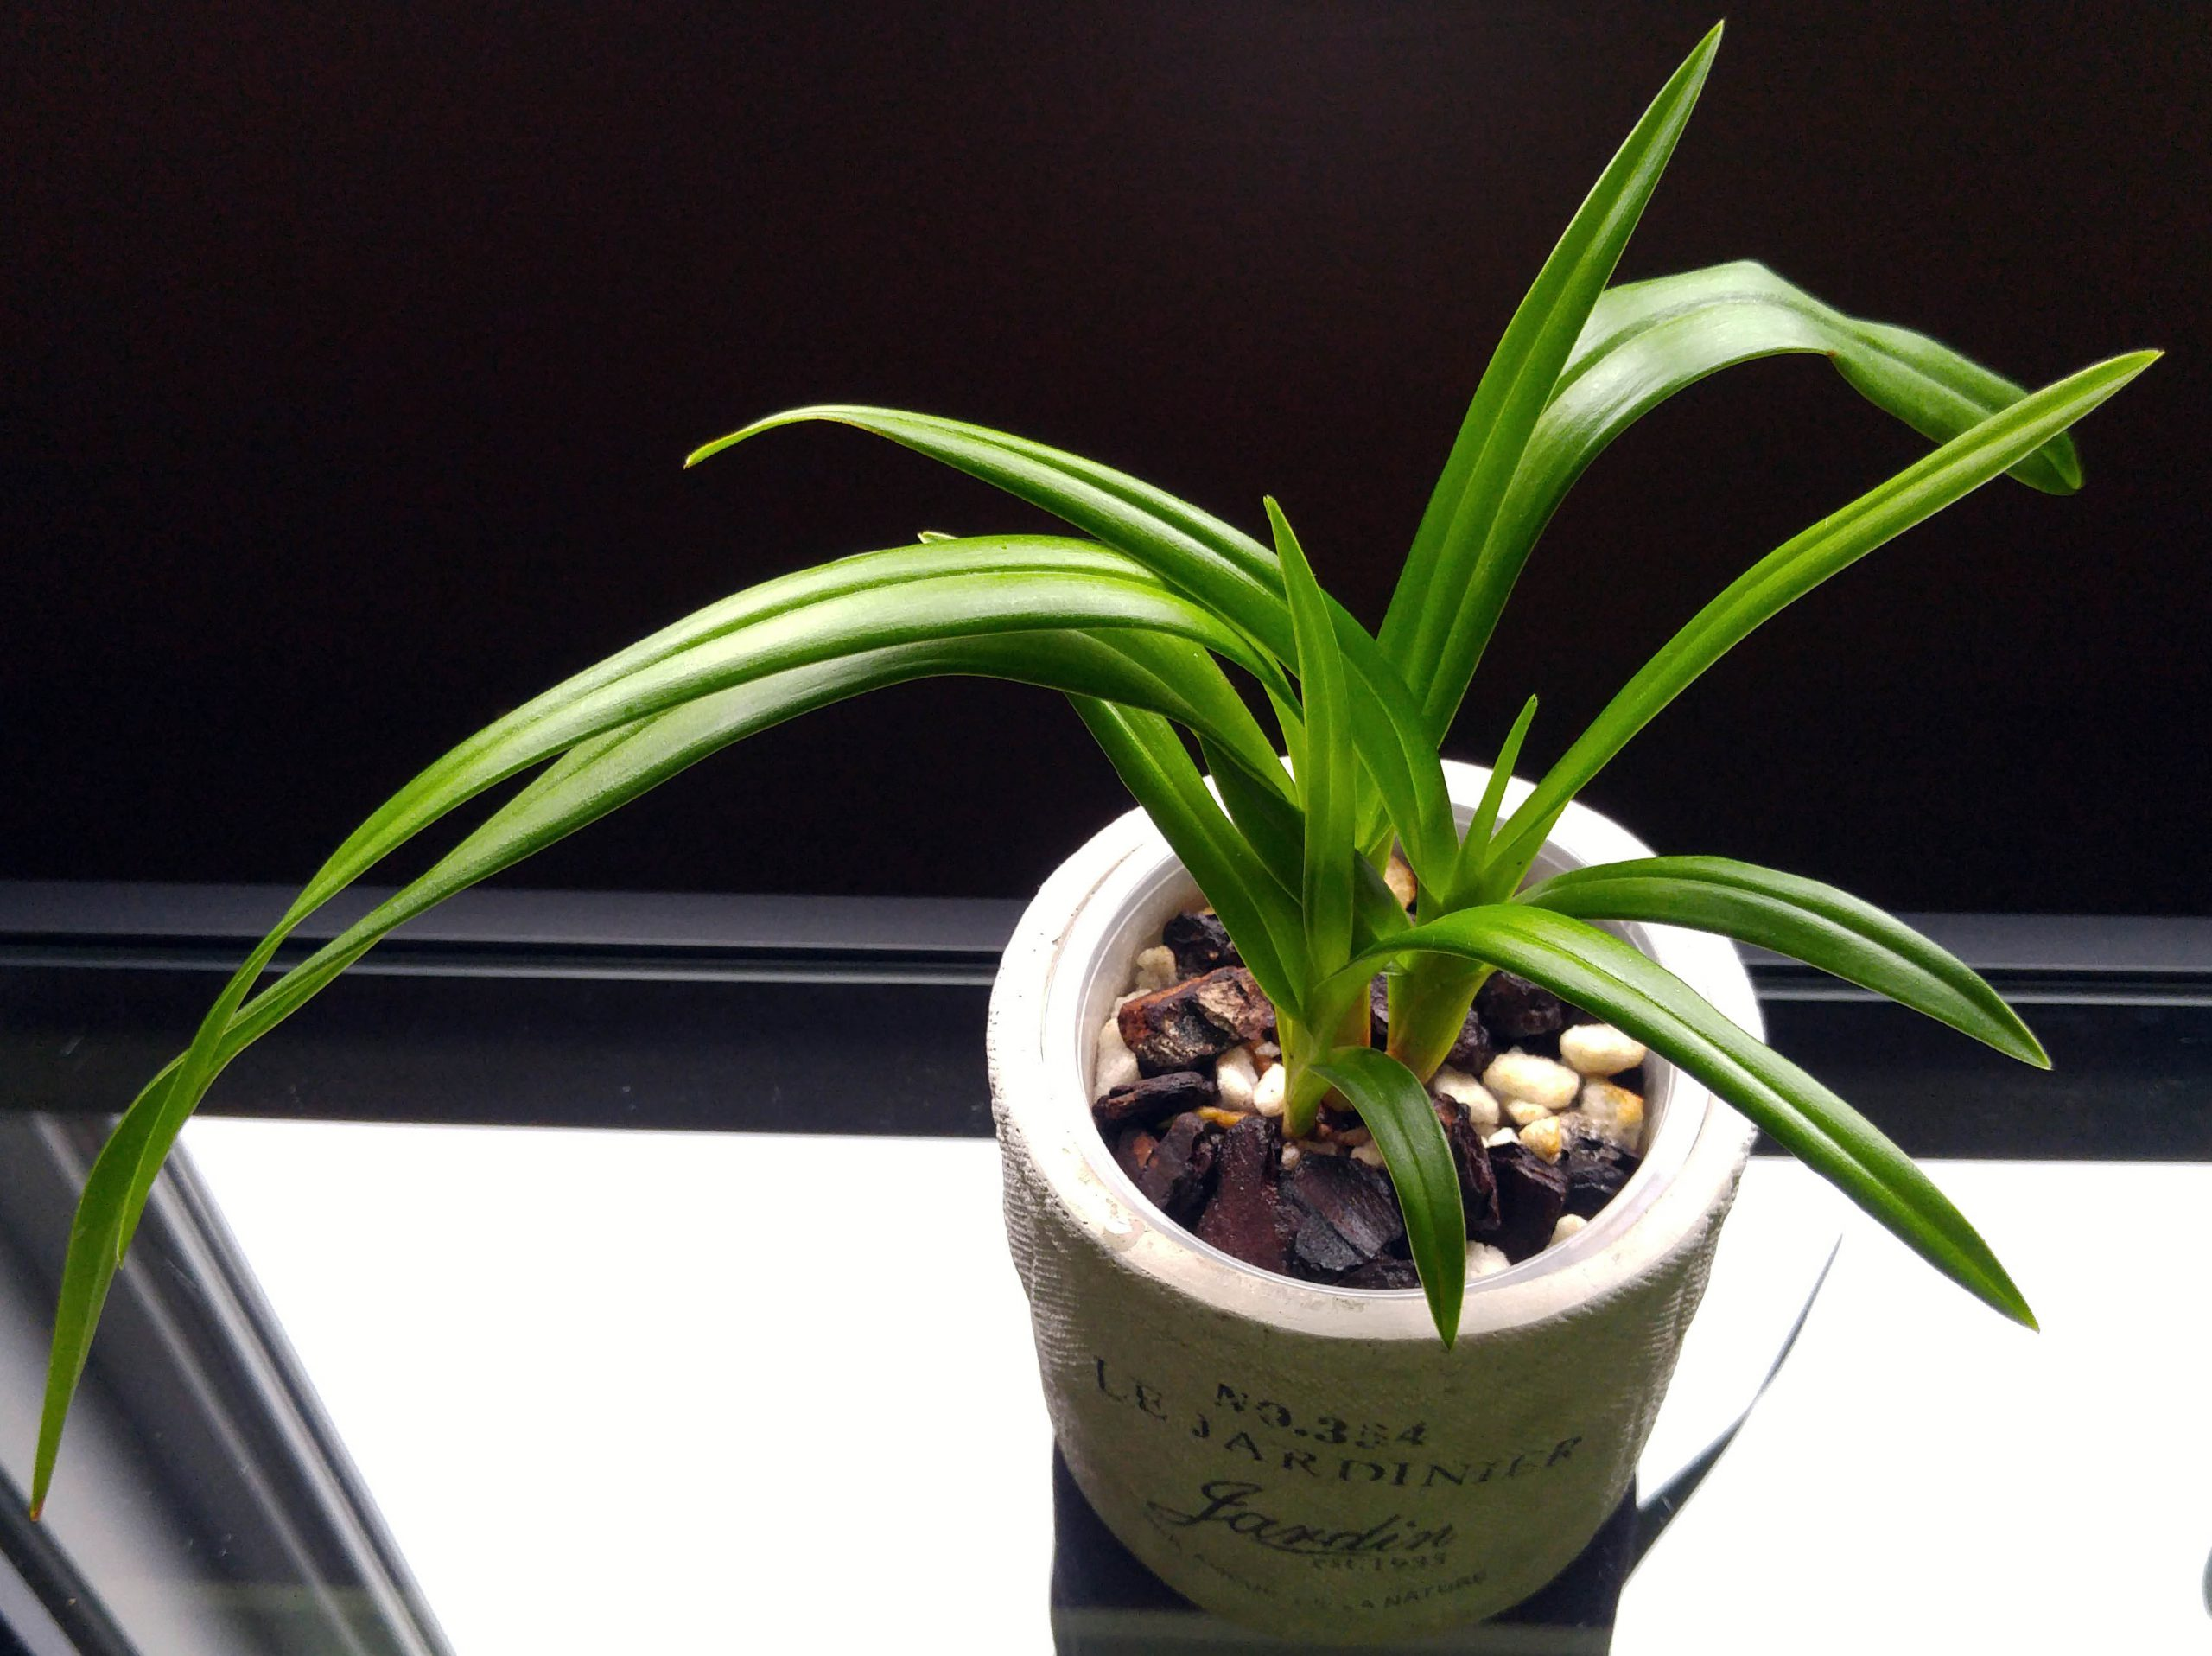 Phragmipedium Predator